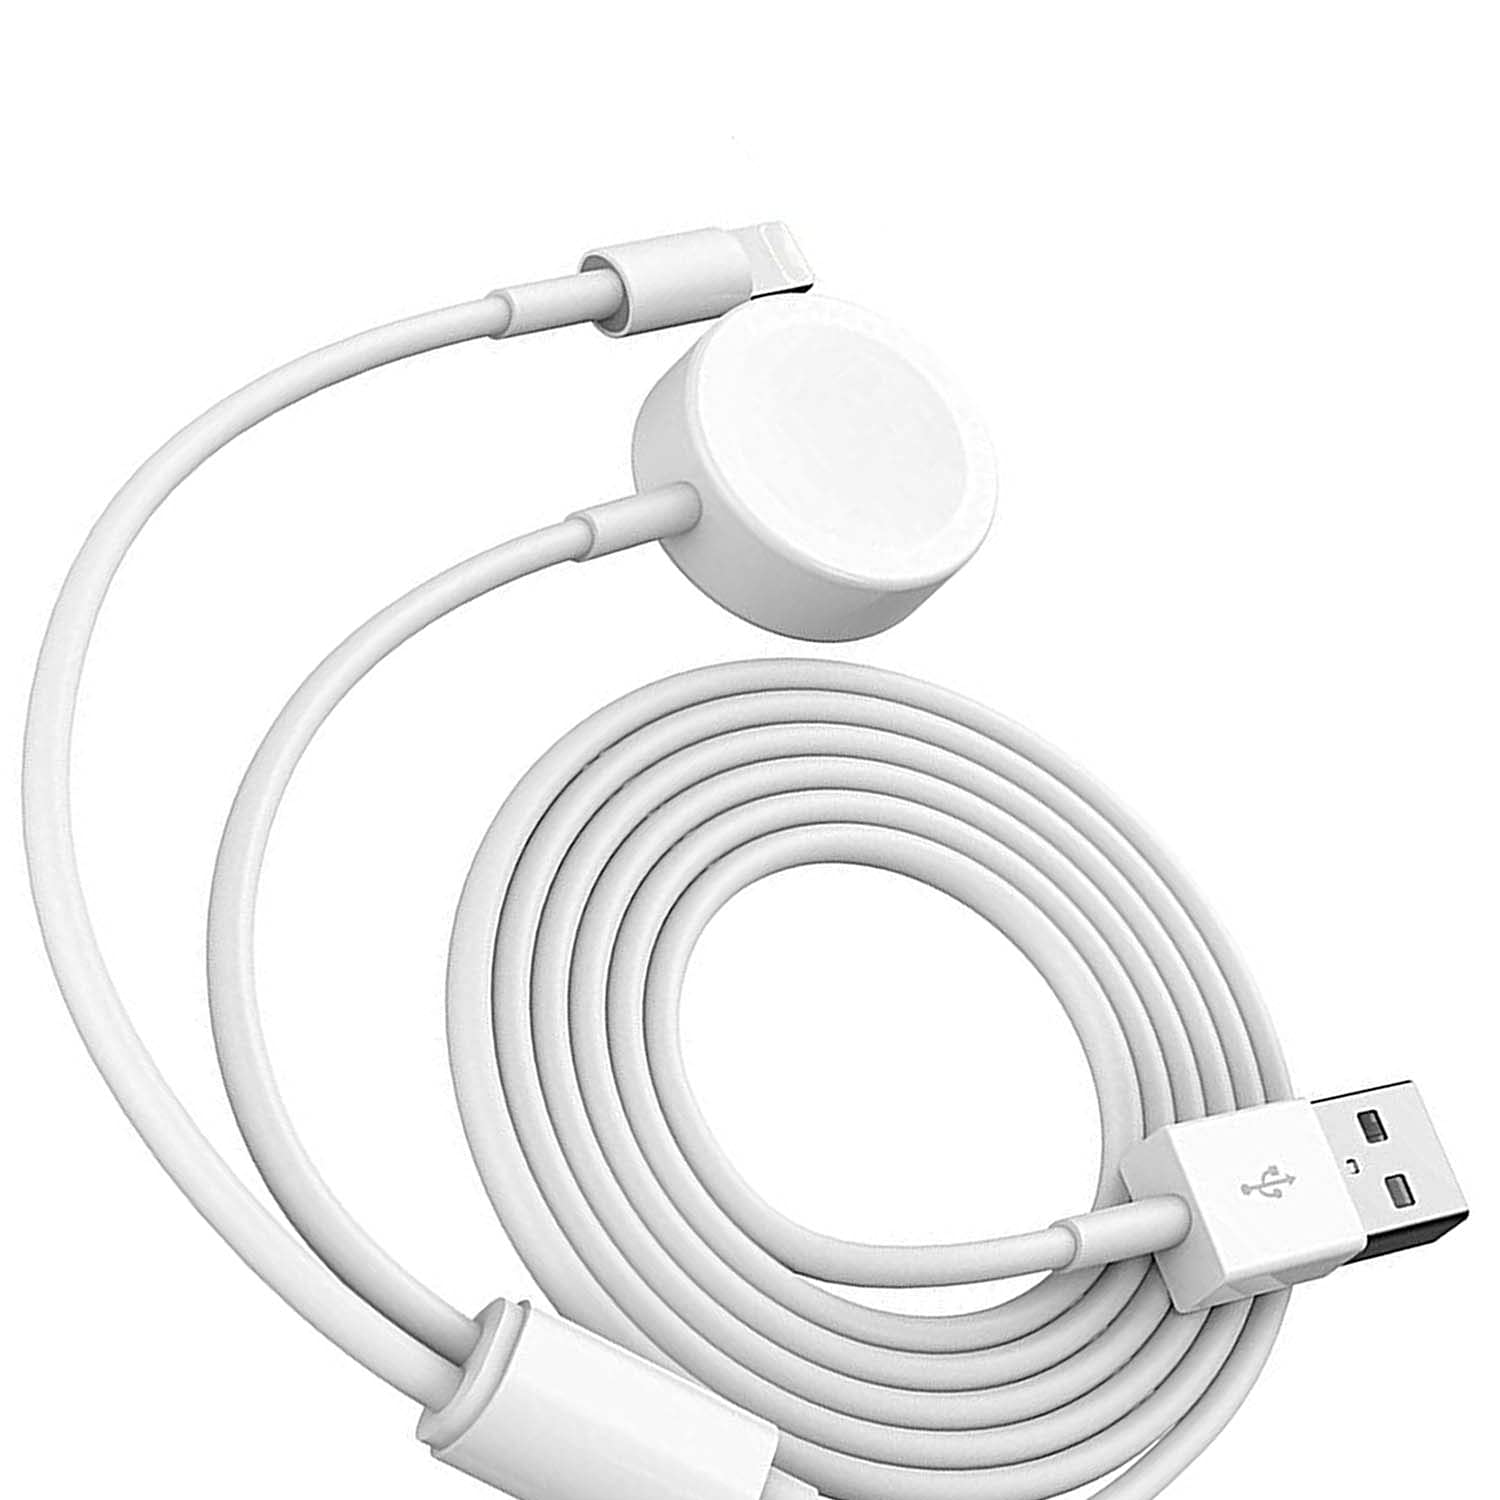 Smart Watch Charger Charging Cable Compatible with Apple Watch Charger Series 6/5/SE/4/3/2/1 iOS 6.0 & Phone 12/11/Pro/Max/XR/XS/XS Max/X&iPad Series